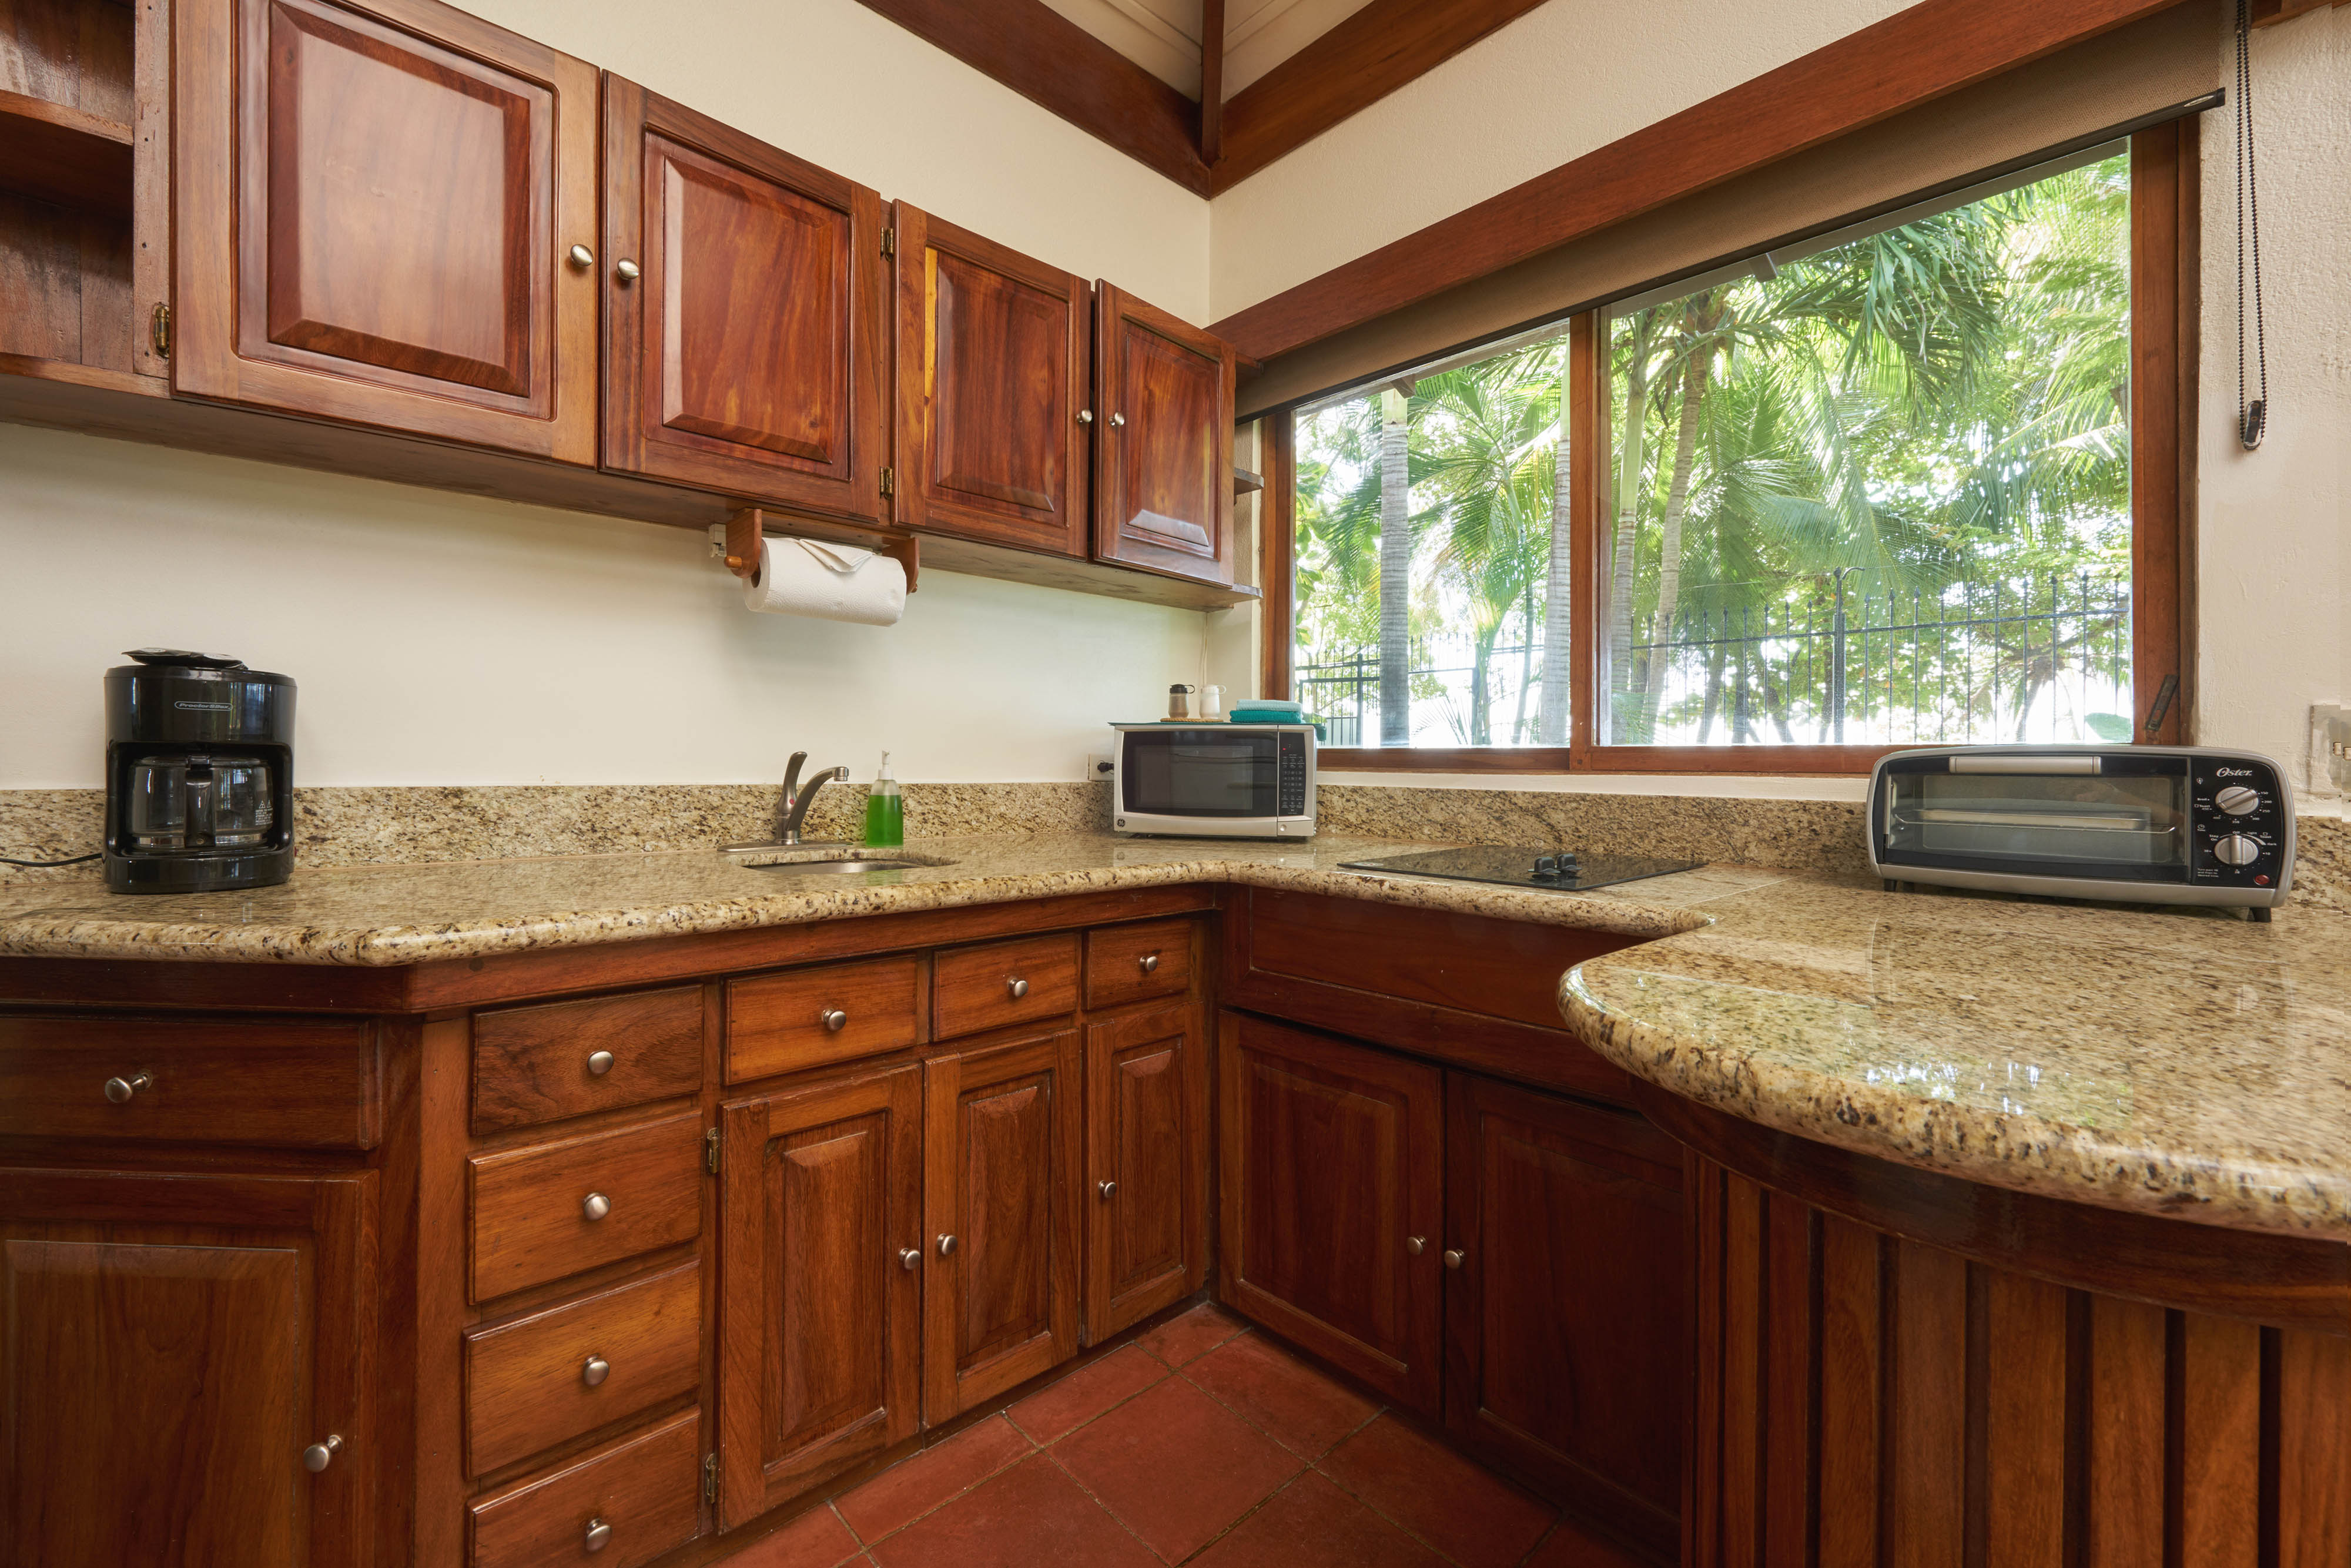 Kitchen in the BeachFront Bungalows